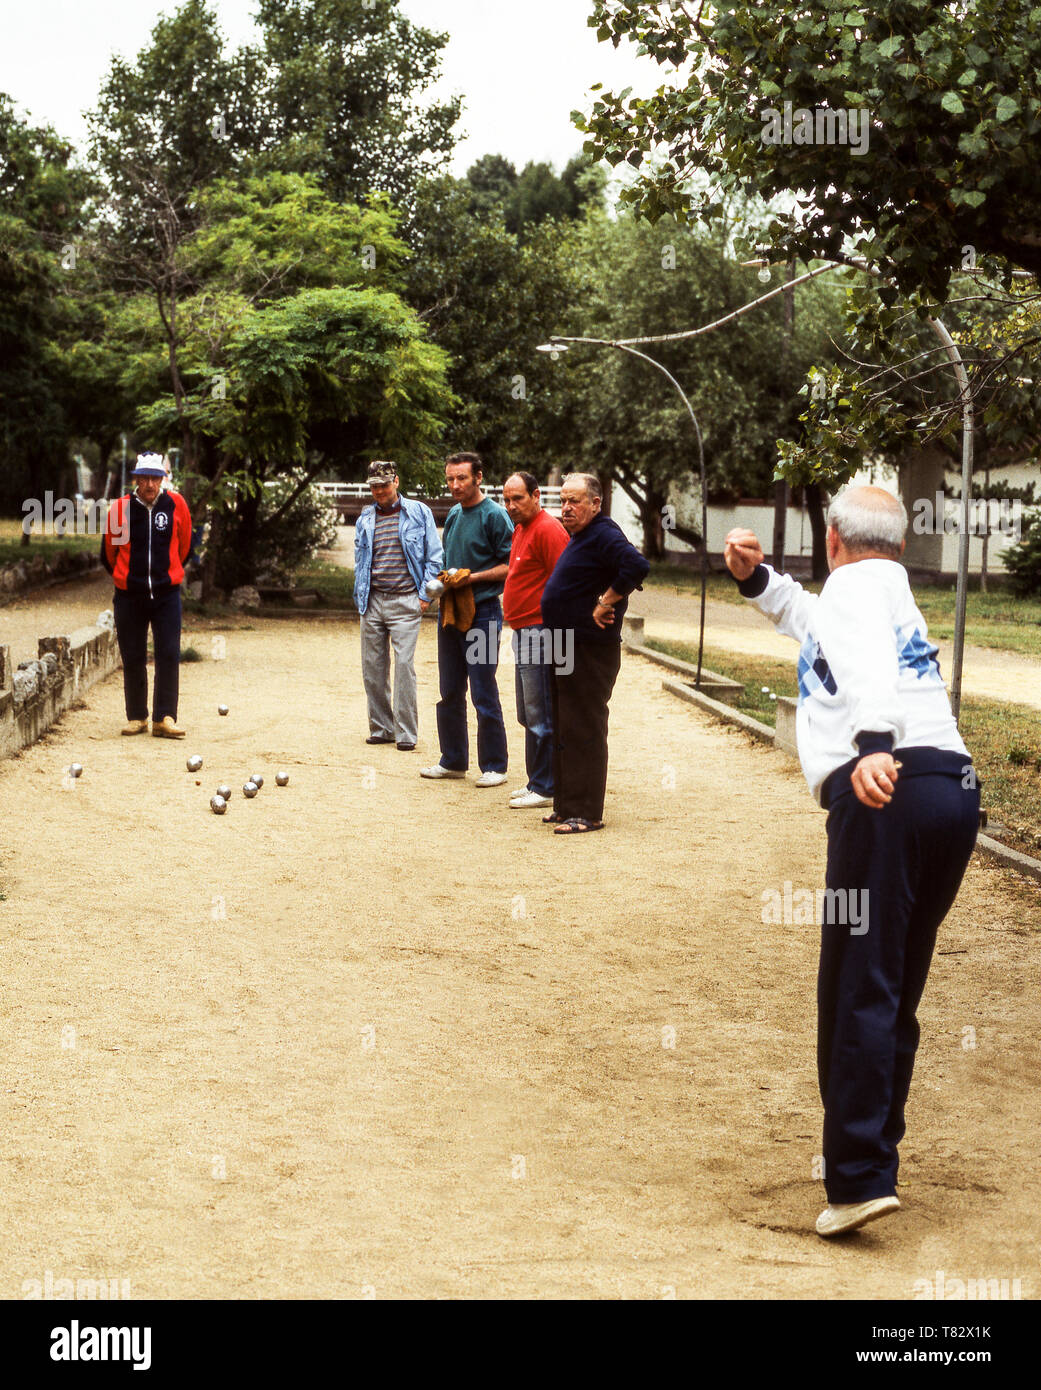 Men playing petanque or boule on a campsite in Mandelieu just outside Cannes on the French Riviera. - Stock Image